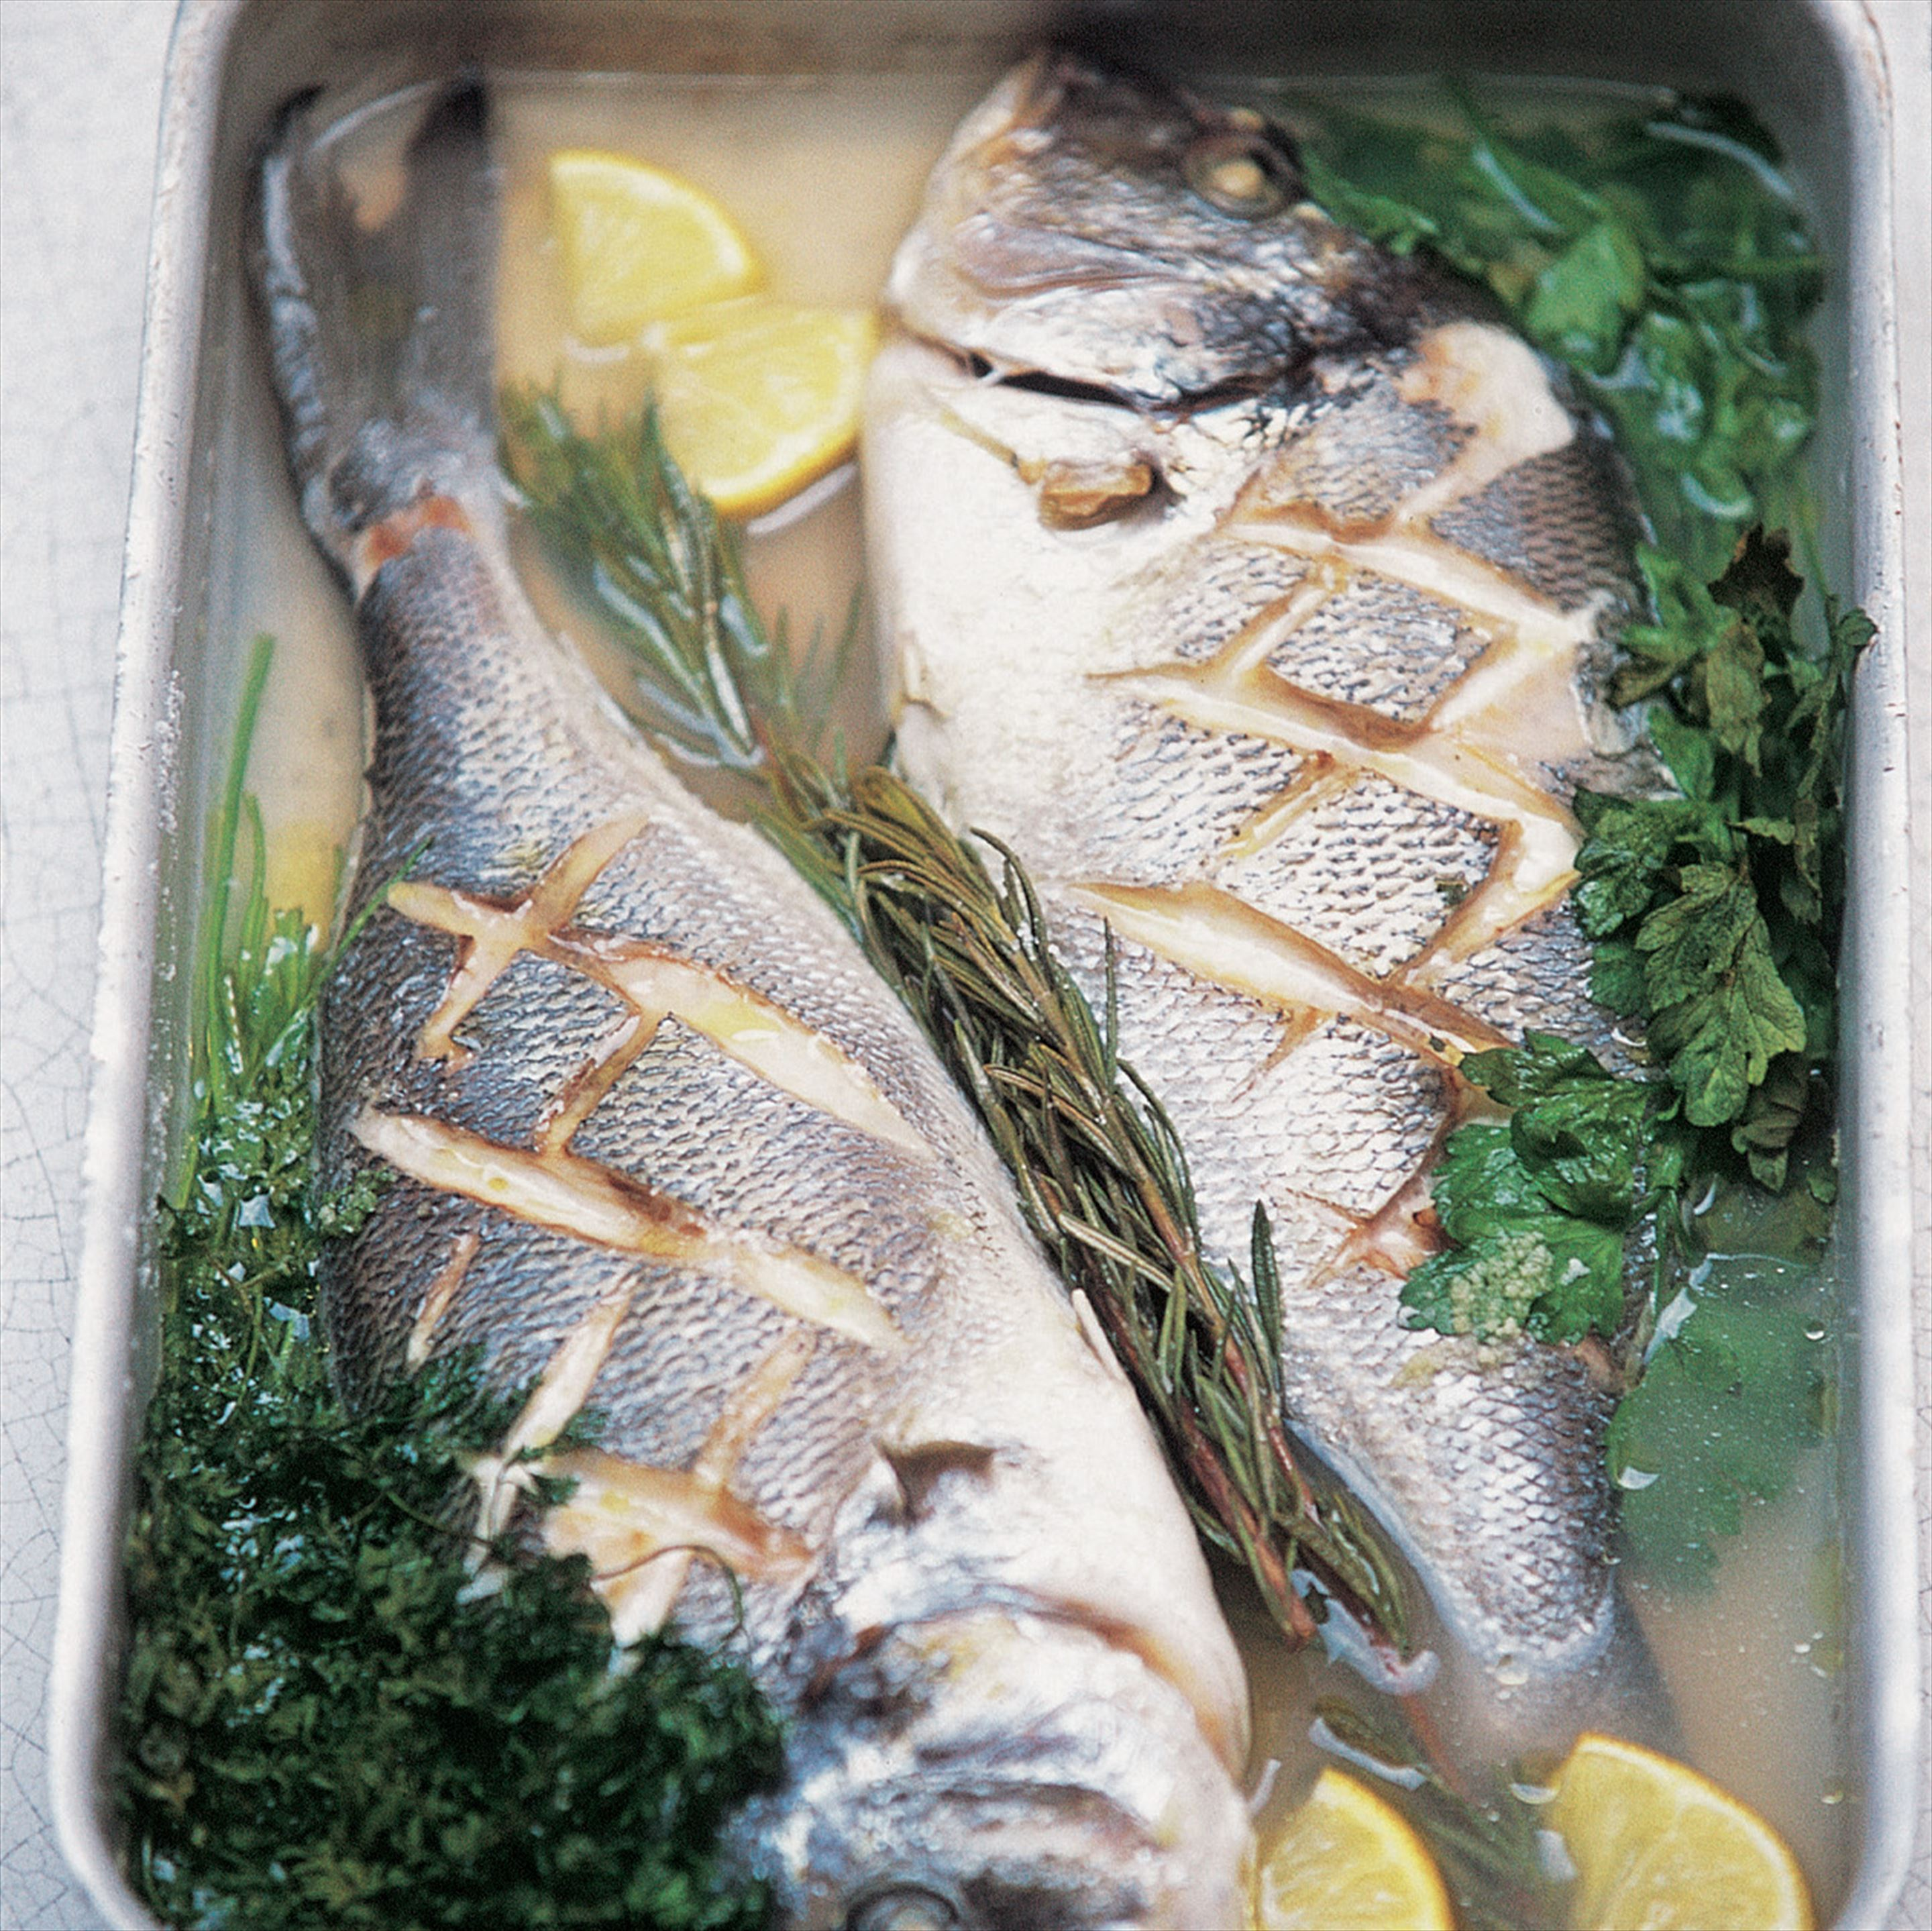 Poached sea bream